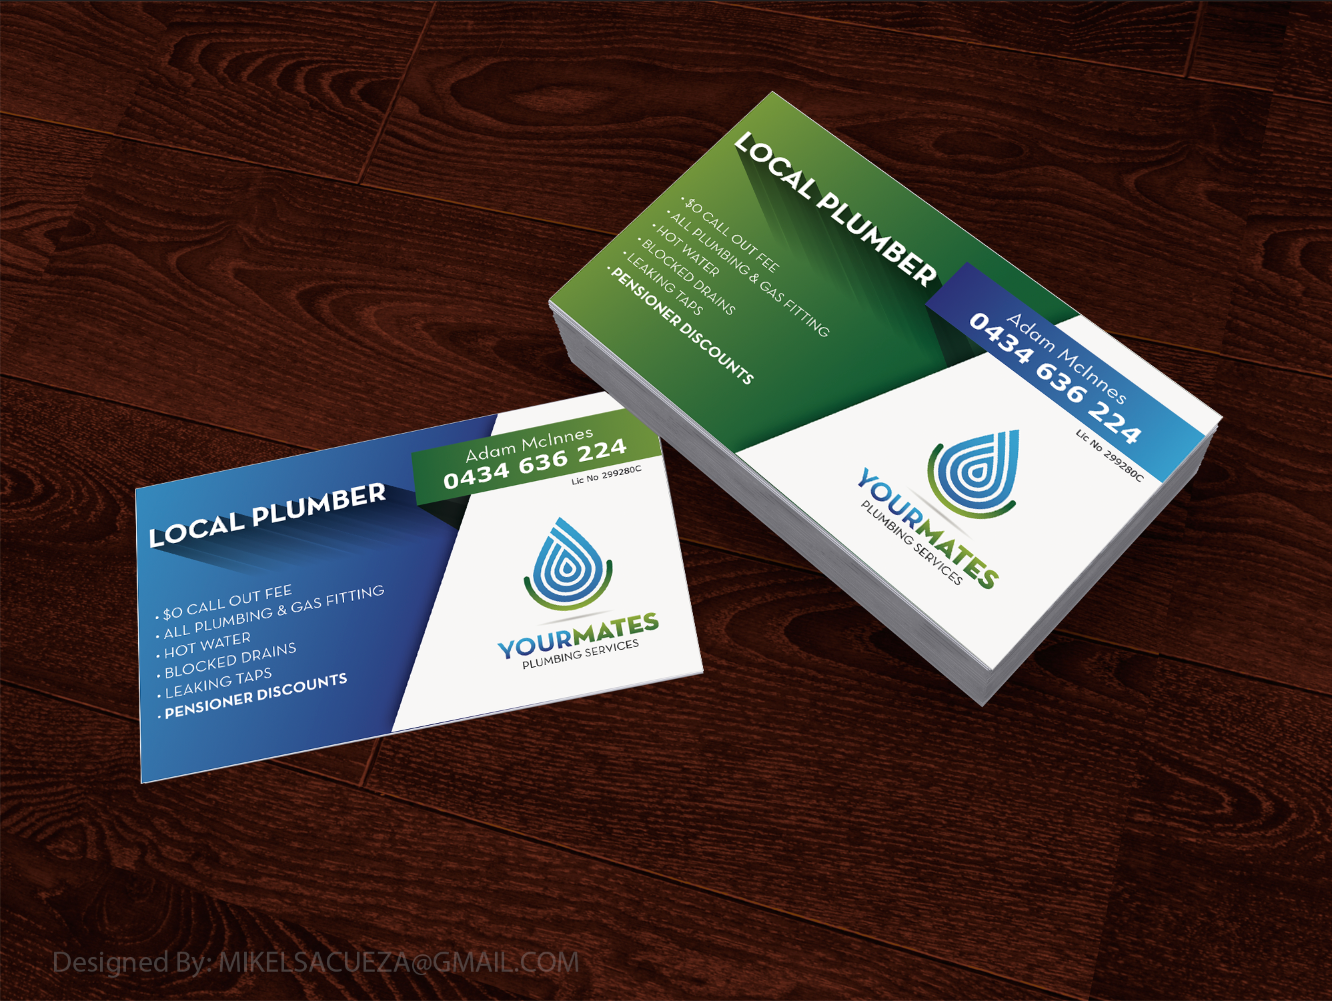 Graphic Design Portfolio - BUSINESS CARD DESIGN